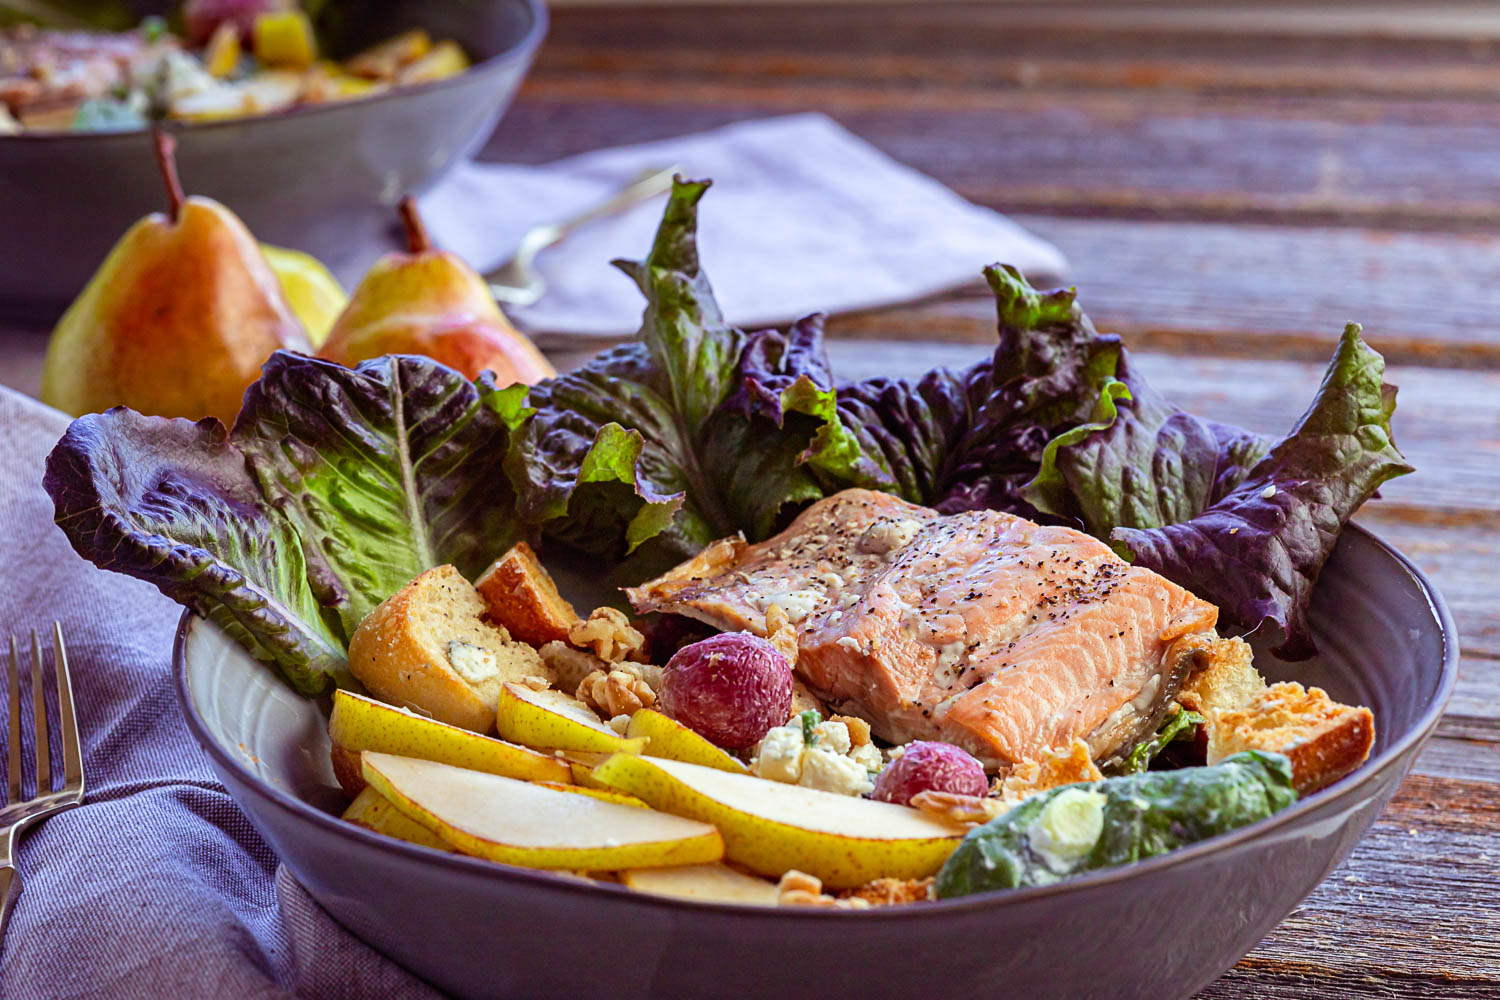 Pear and Salmon salad